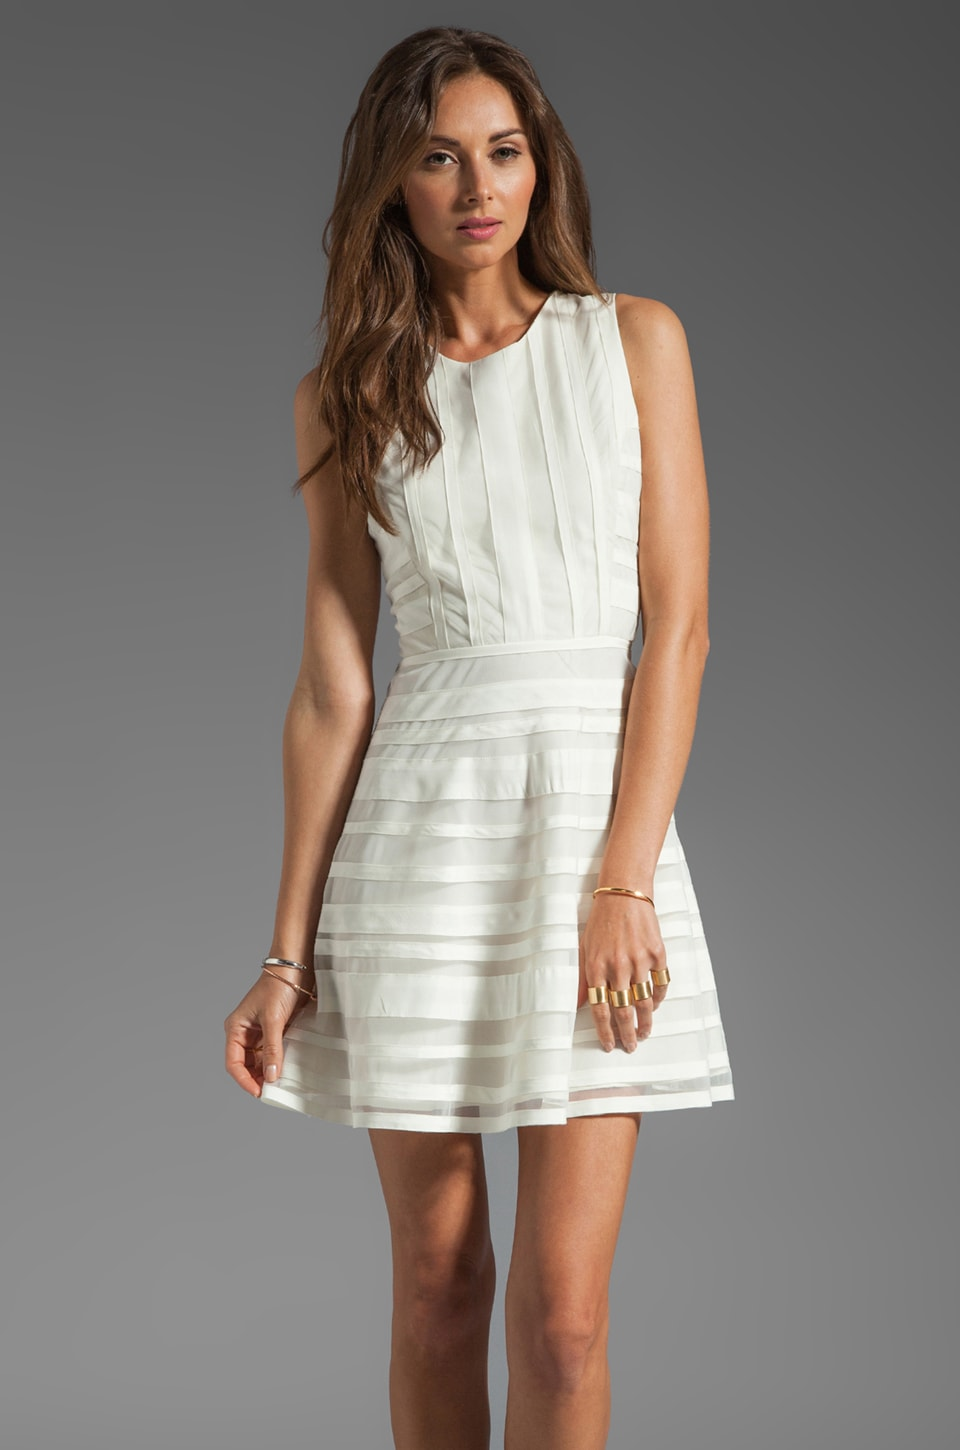 Parker Core Thick Mesh Panel Dress in Linen